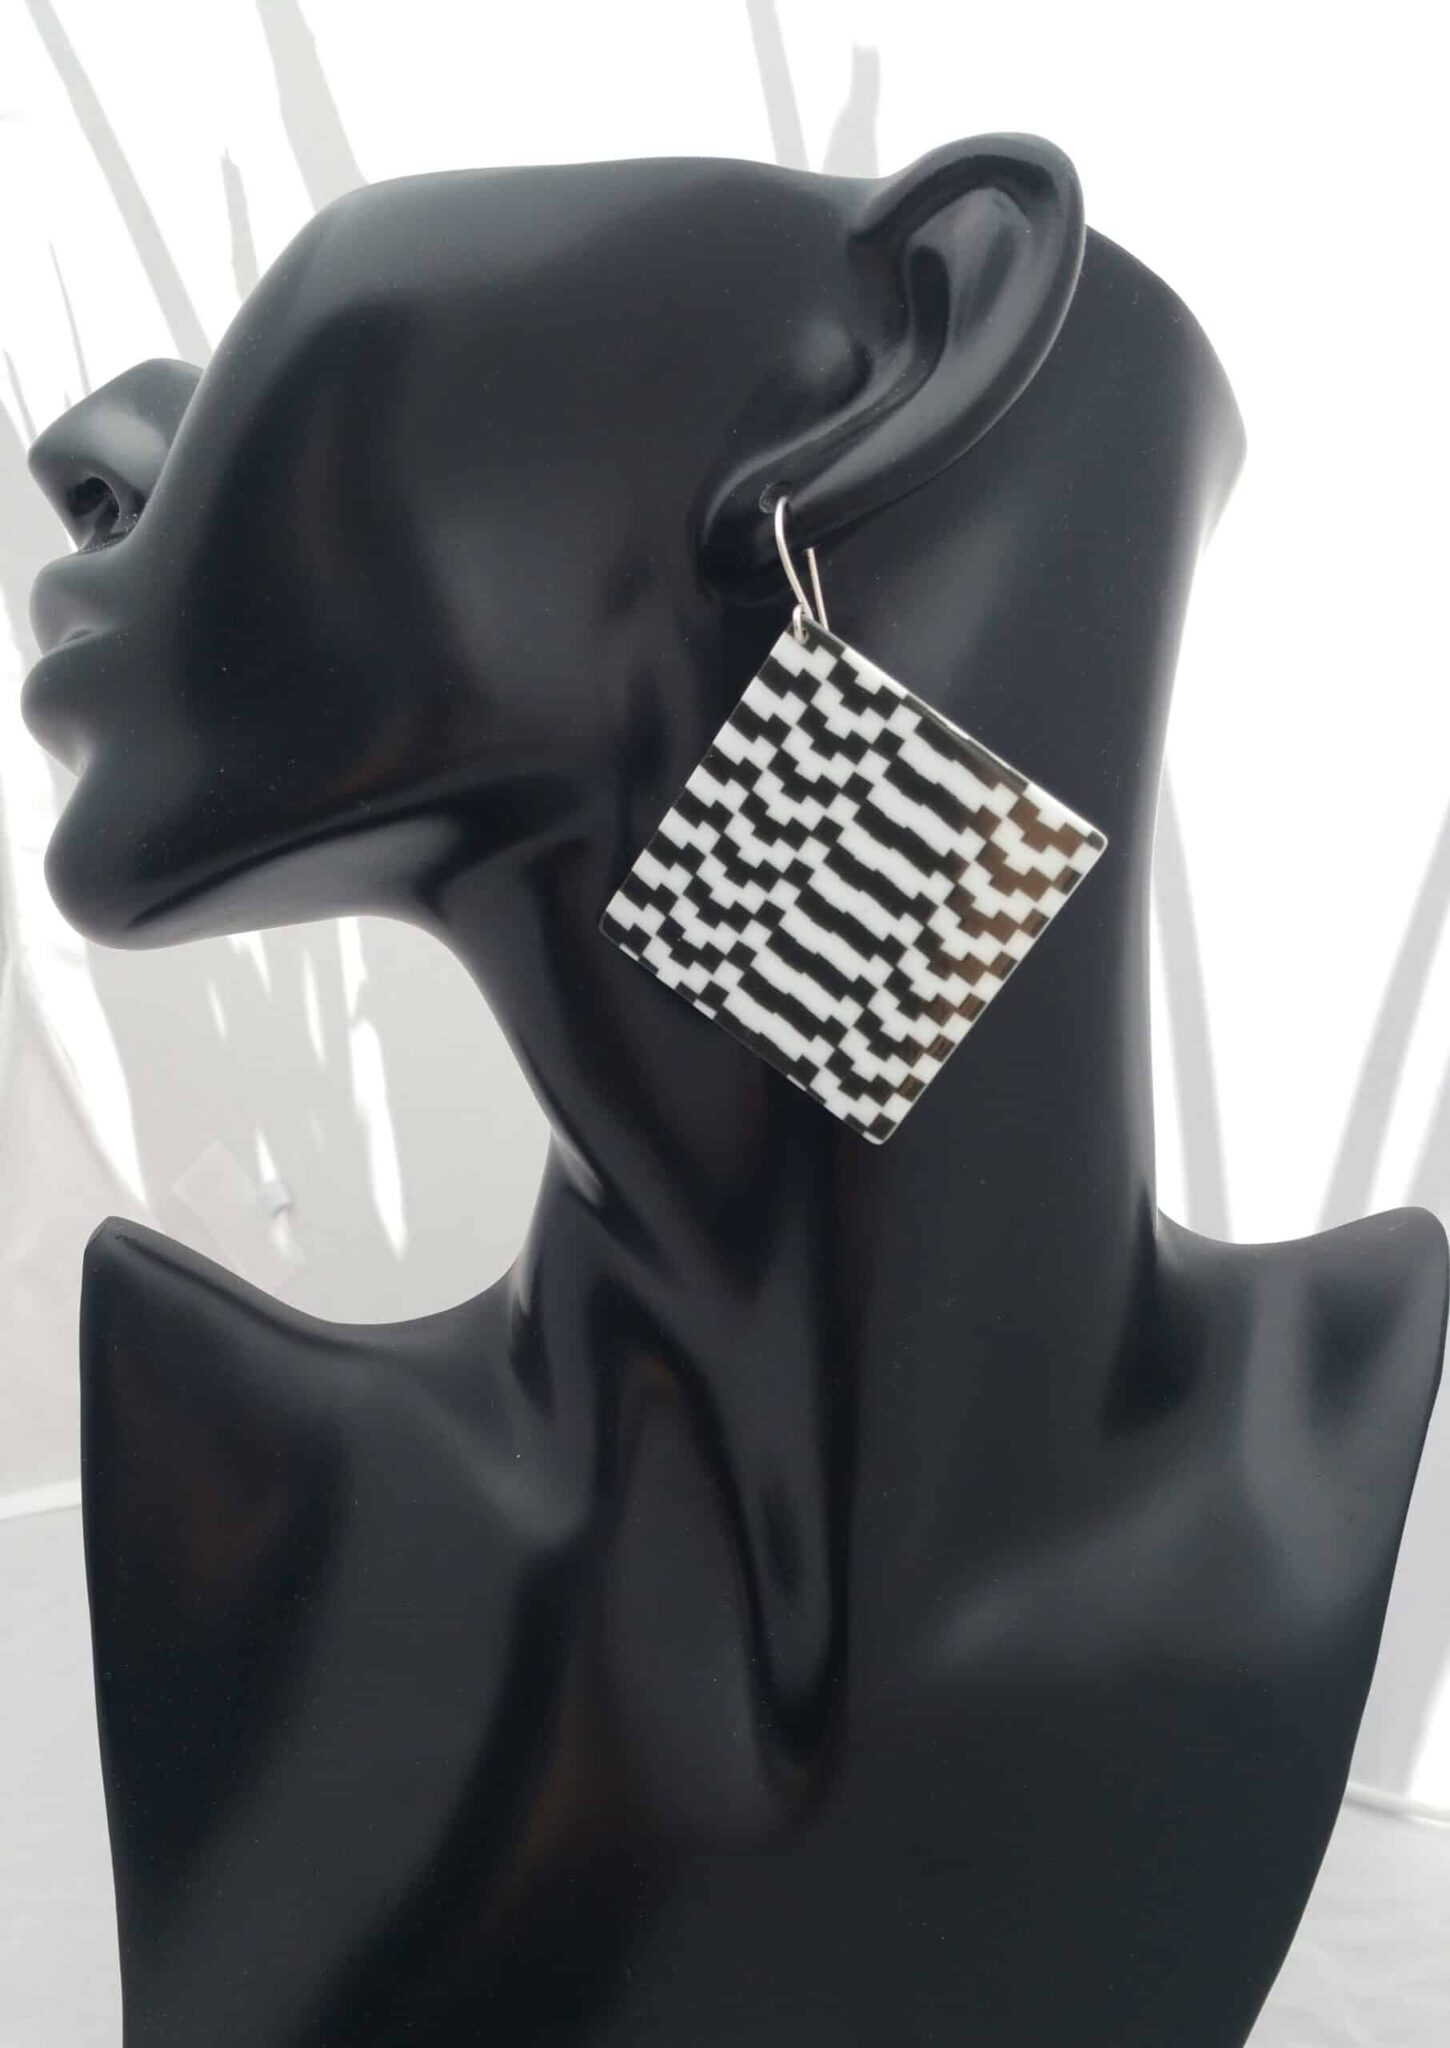 Square Plaid Earrings (Black/White) – 15. By Sterling Silver 925